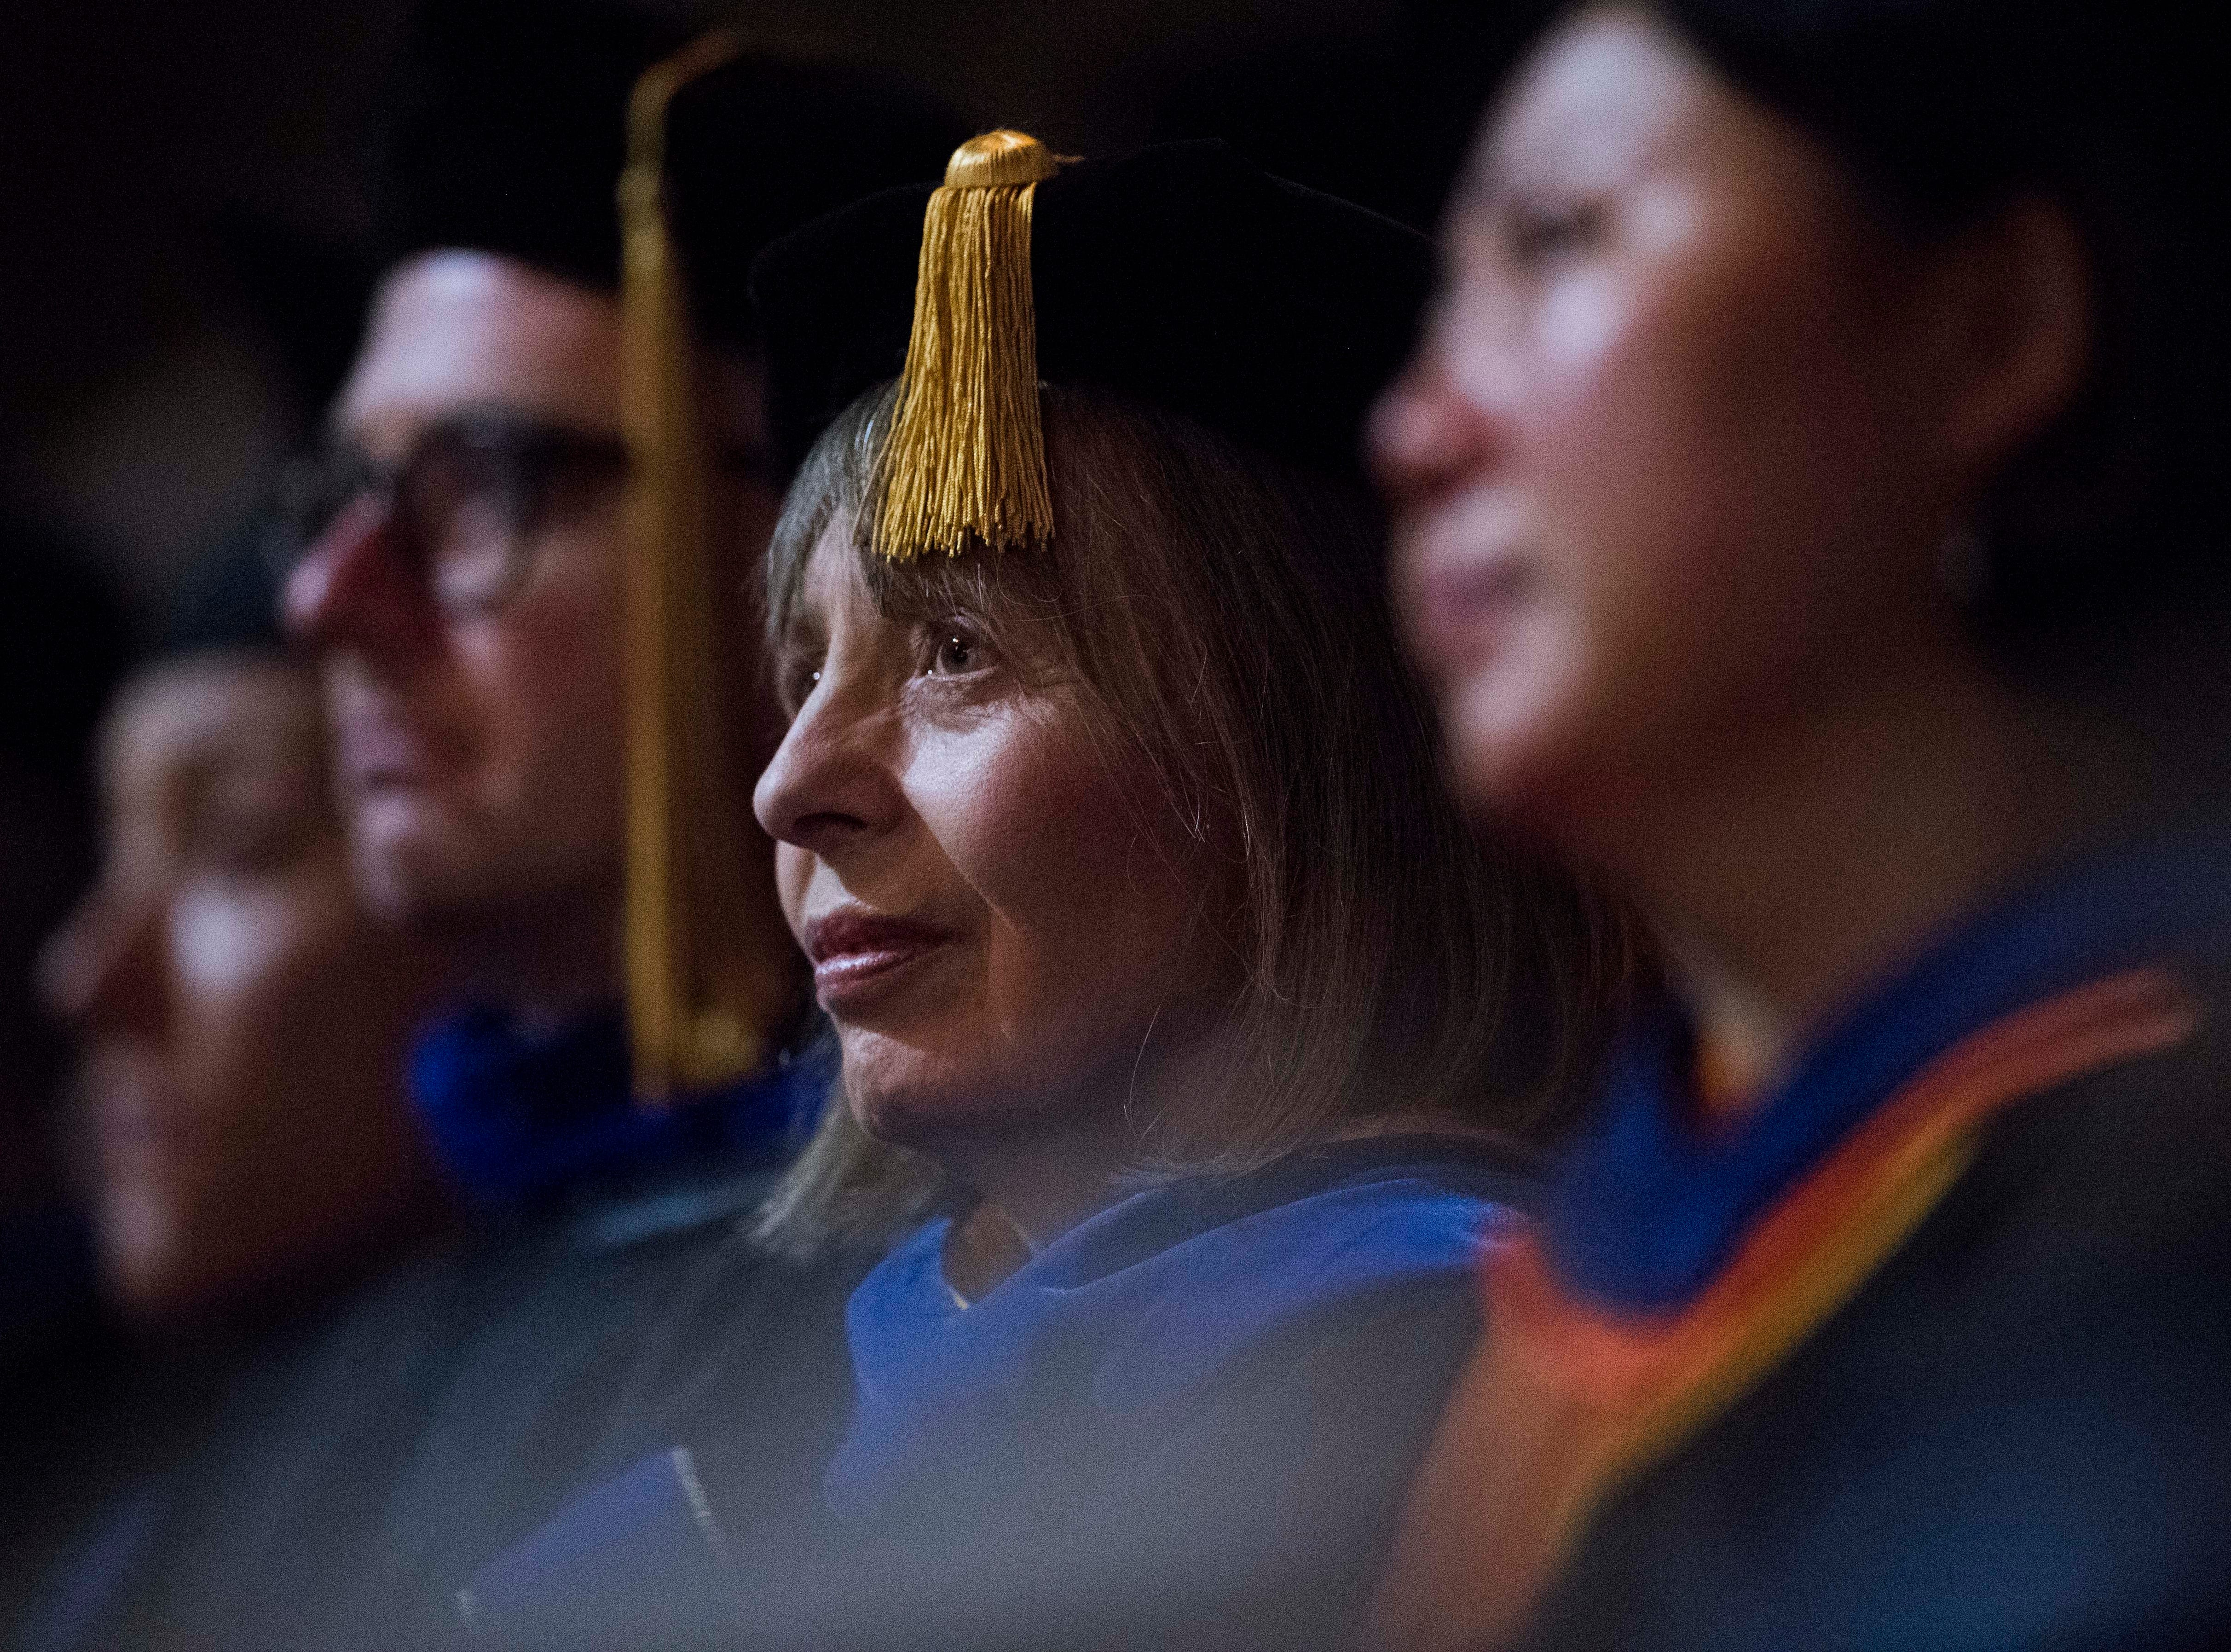 Faculty and staff sit during University of Tennessee's College of Arts and Sciences commencement in Thompson-Boling arena in Knoxville, Saturday, May 11, 2019.